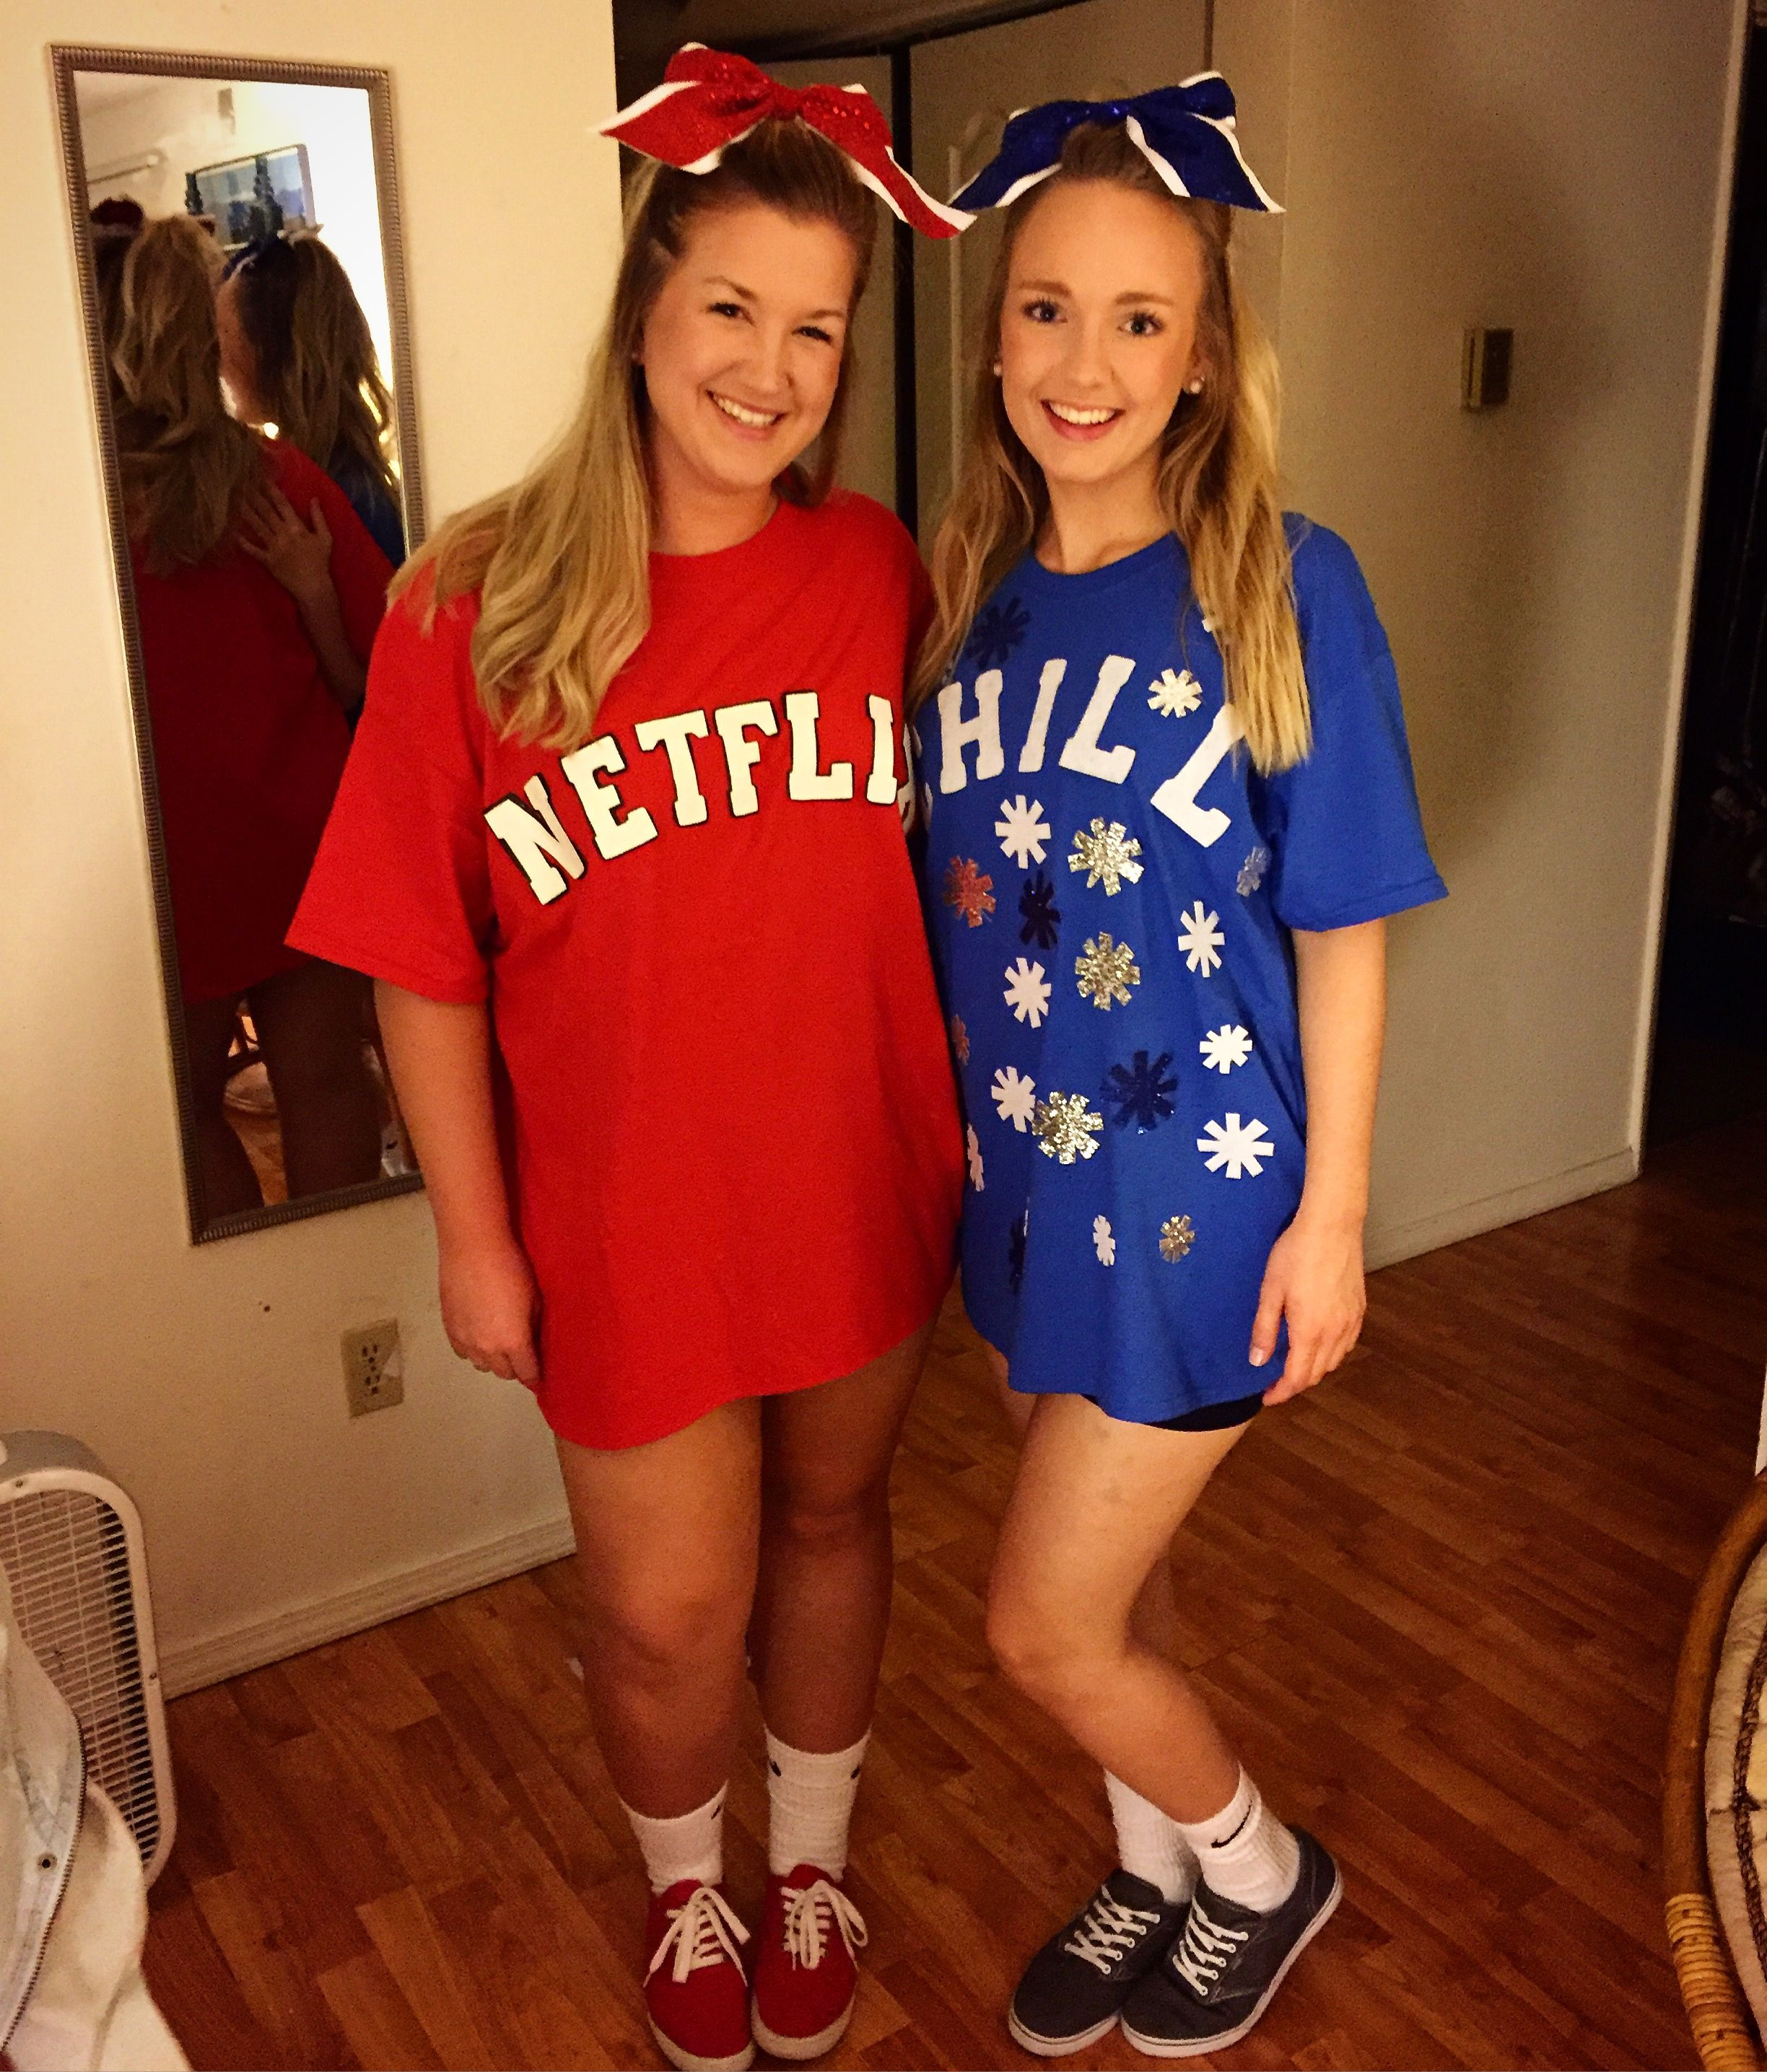 Best Friend Halloween Costume!Netflix And Chill Was A HUGE Hit All Craft Supplies And Tshirts ...